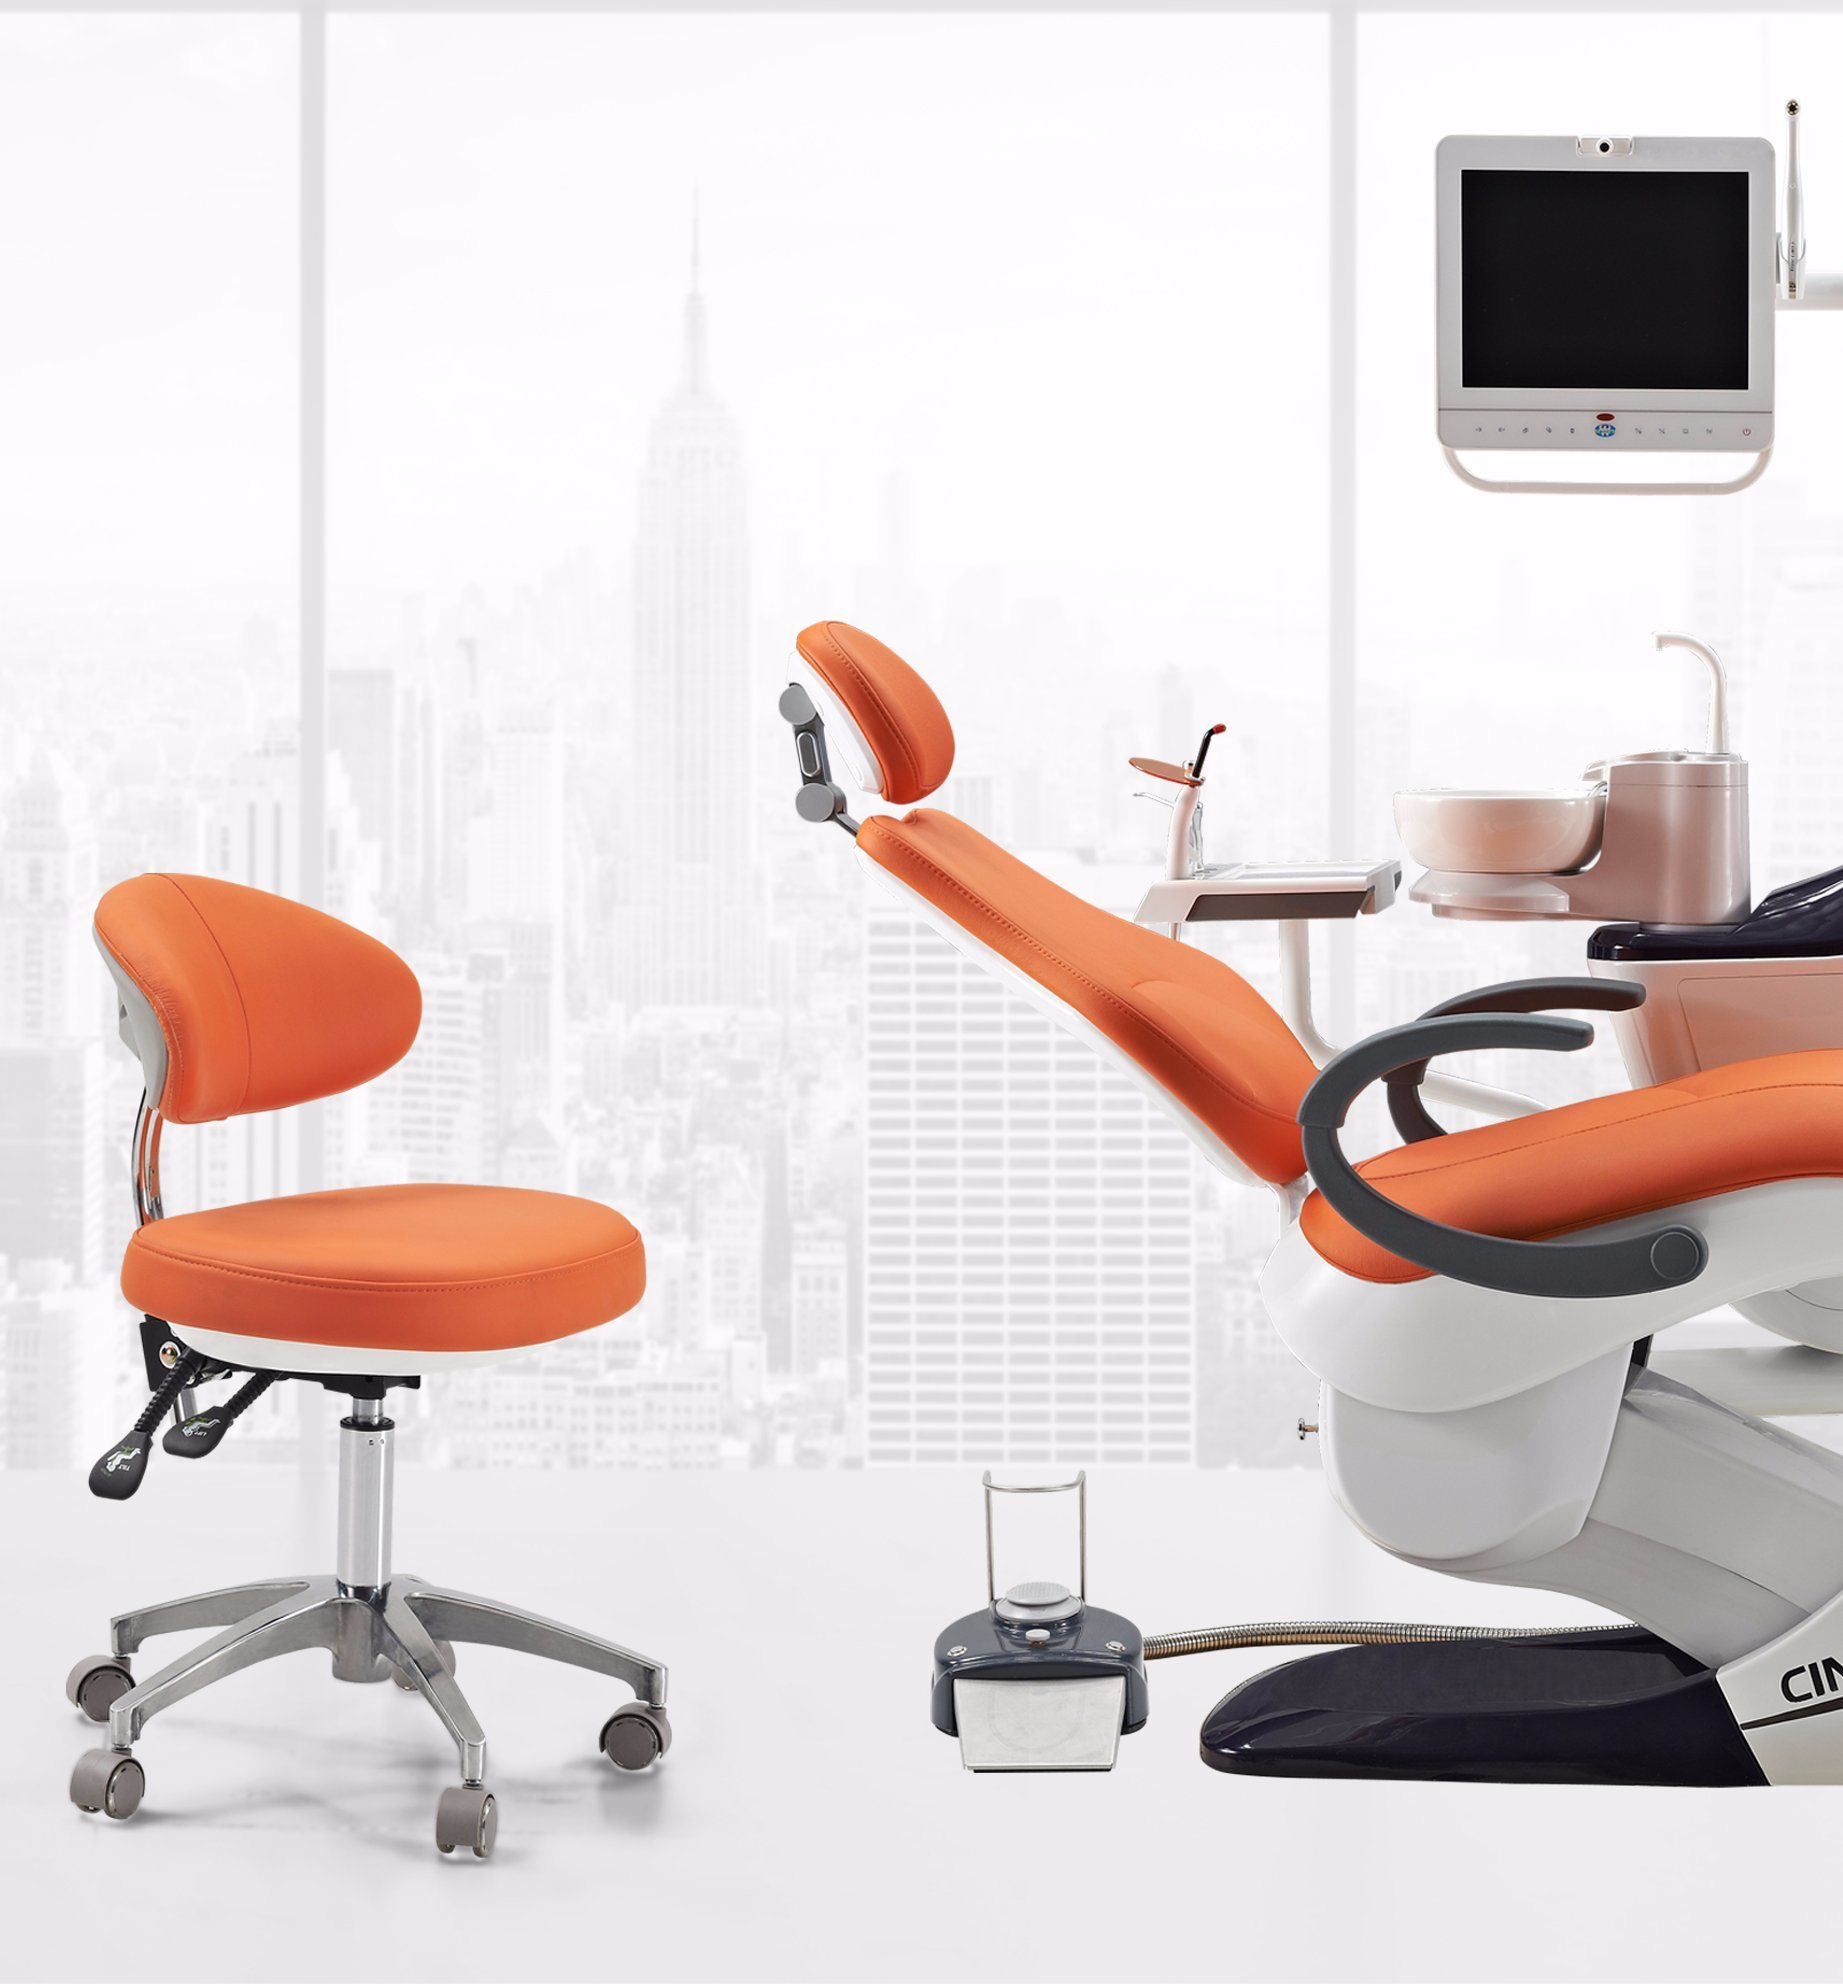 2017 New Dental Chair with Mobile Cart